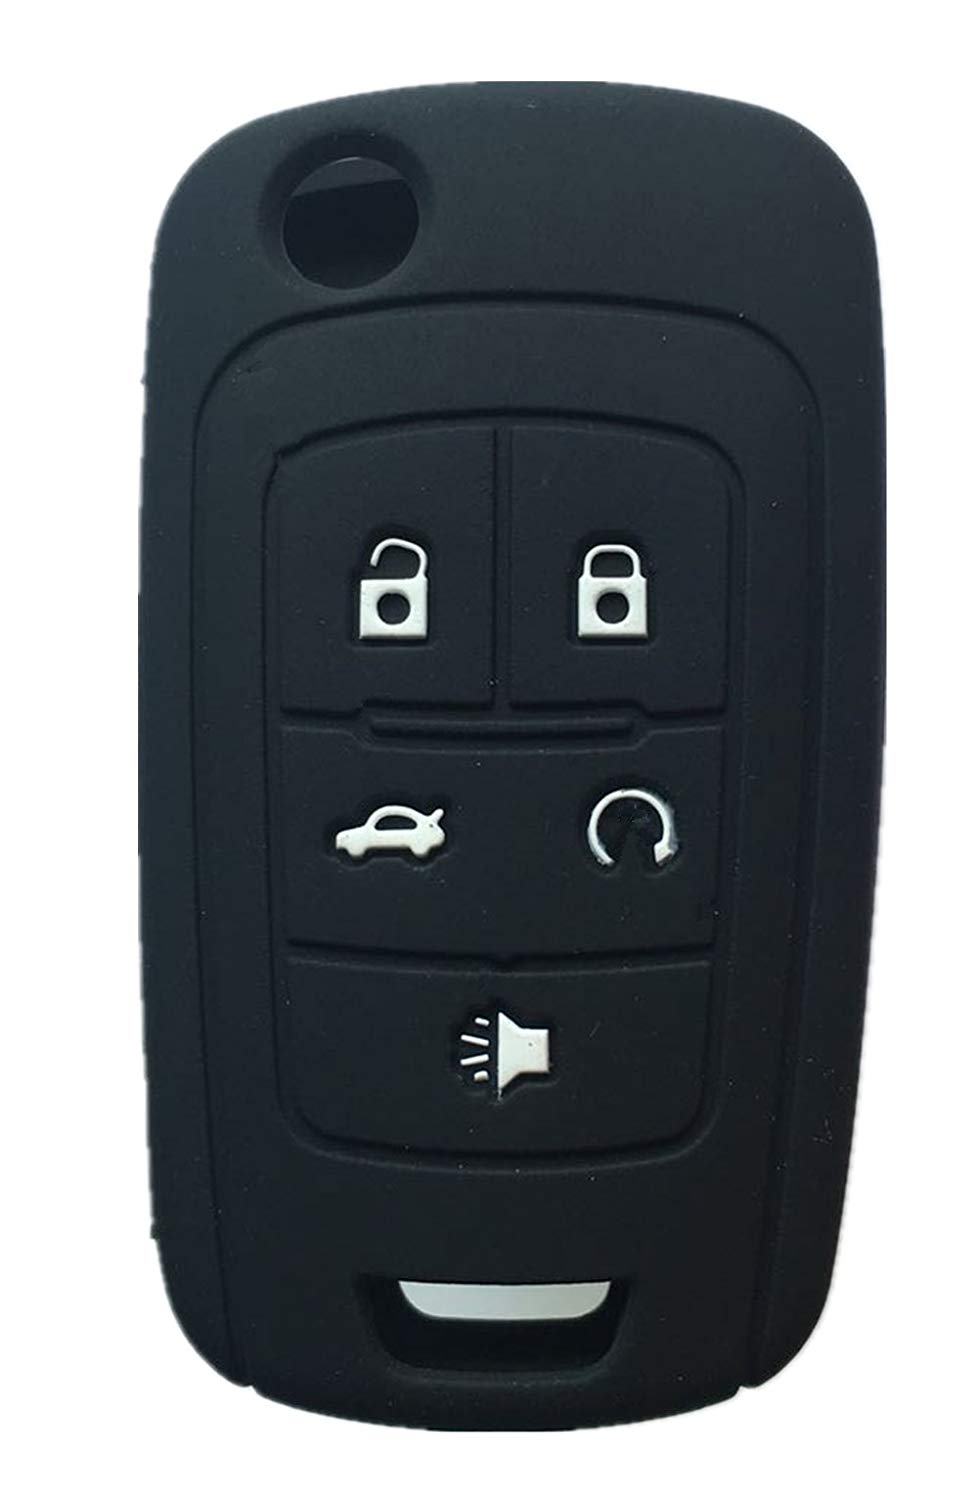 Rpkey Silicone Keyless Entry Remote Control Key Fob Cover Case protector For Buick Encore LaCrosse Regal Verano OHT01060512 5461A-01060512